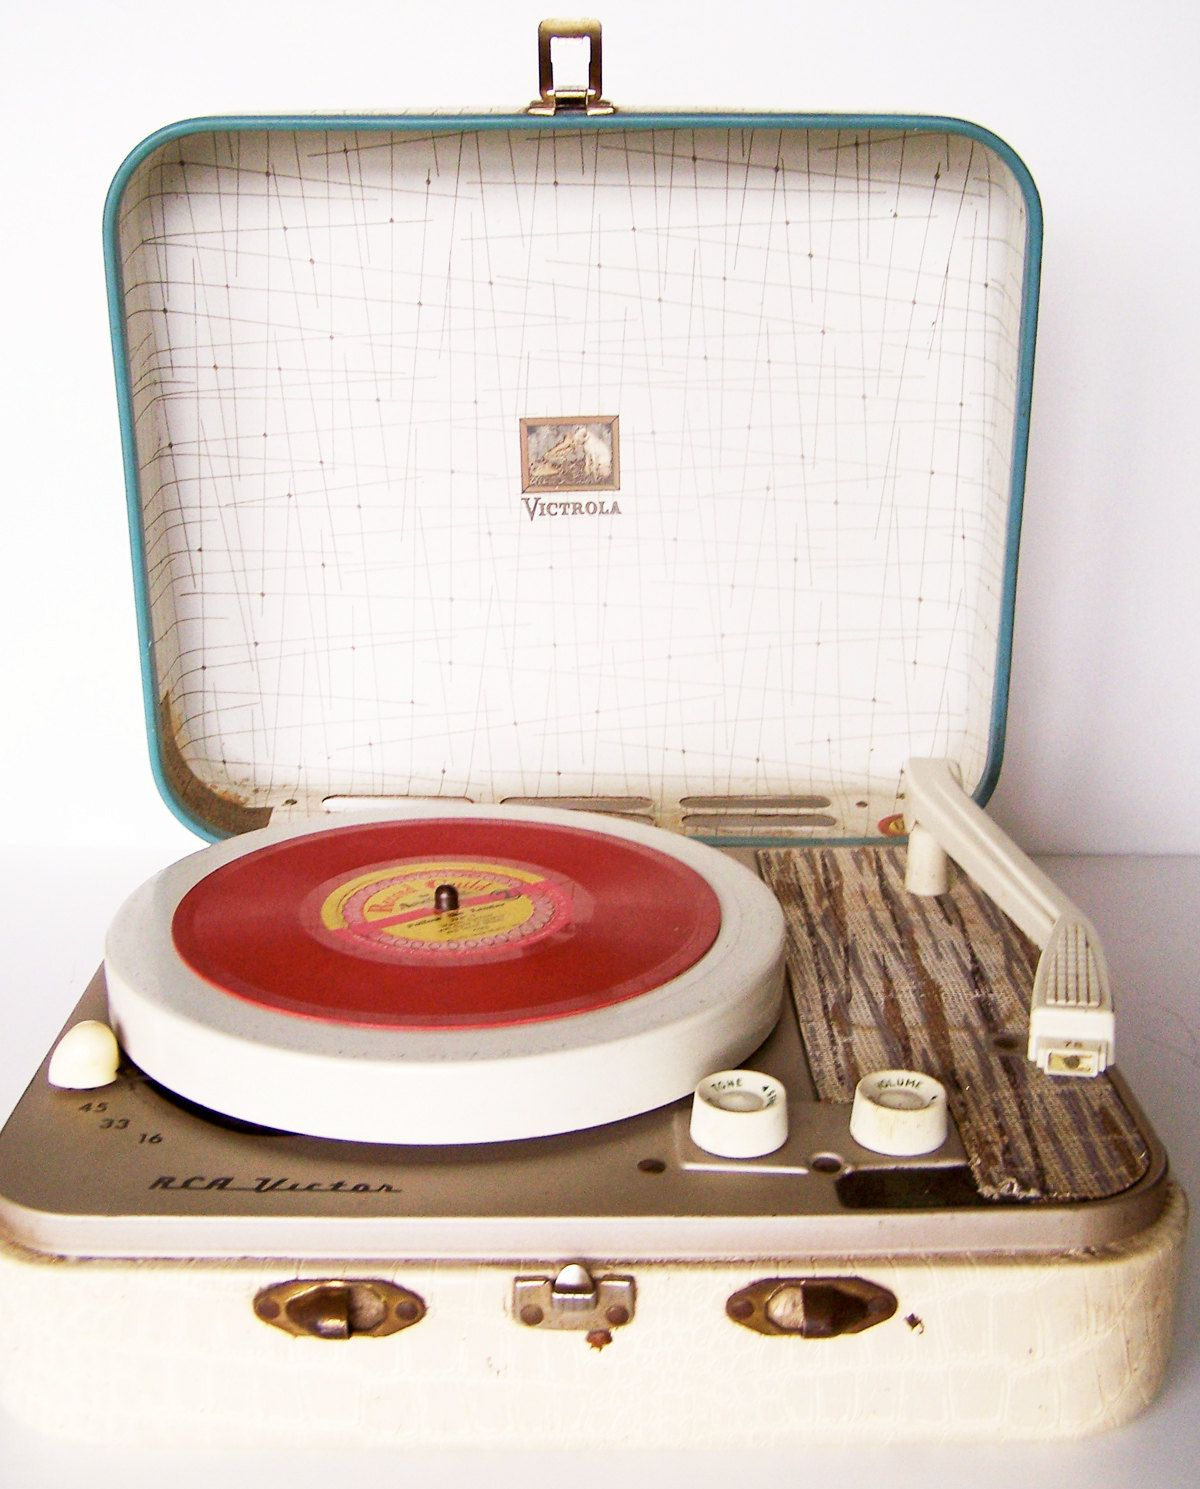 Rca Victor Victrola Suitcase Record Player 1950s